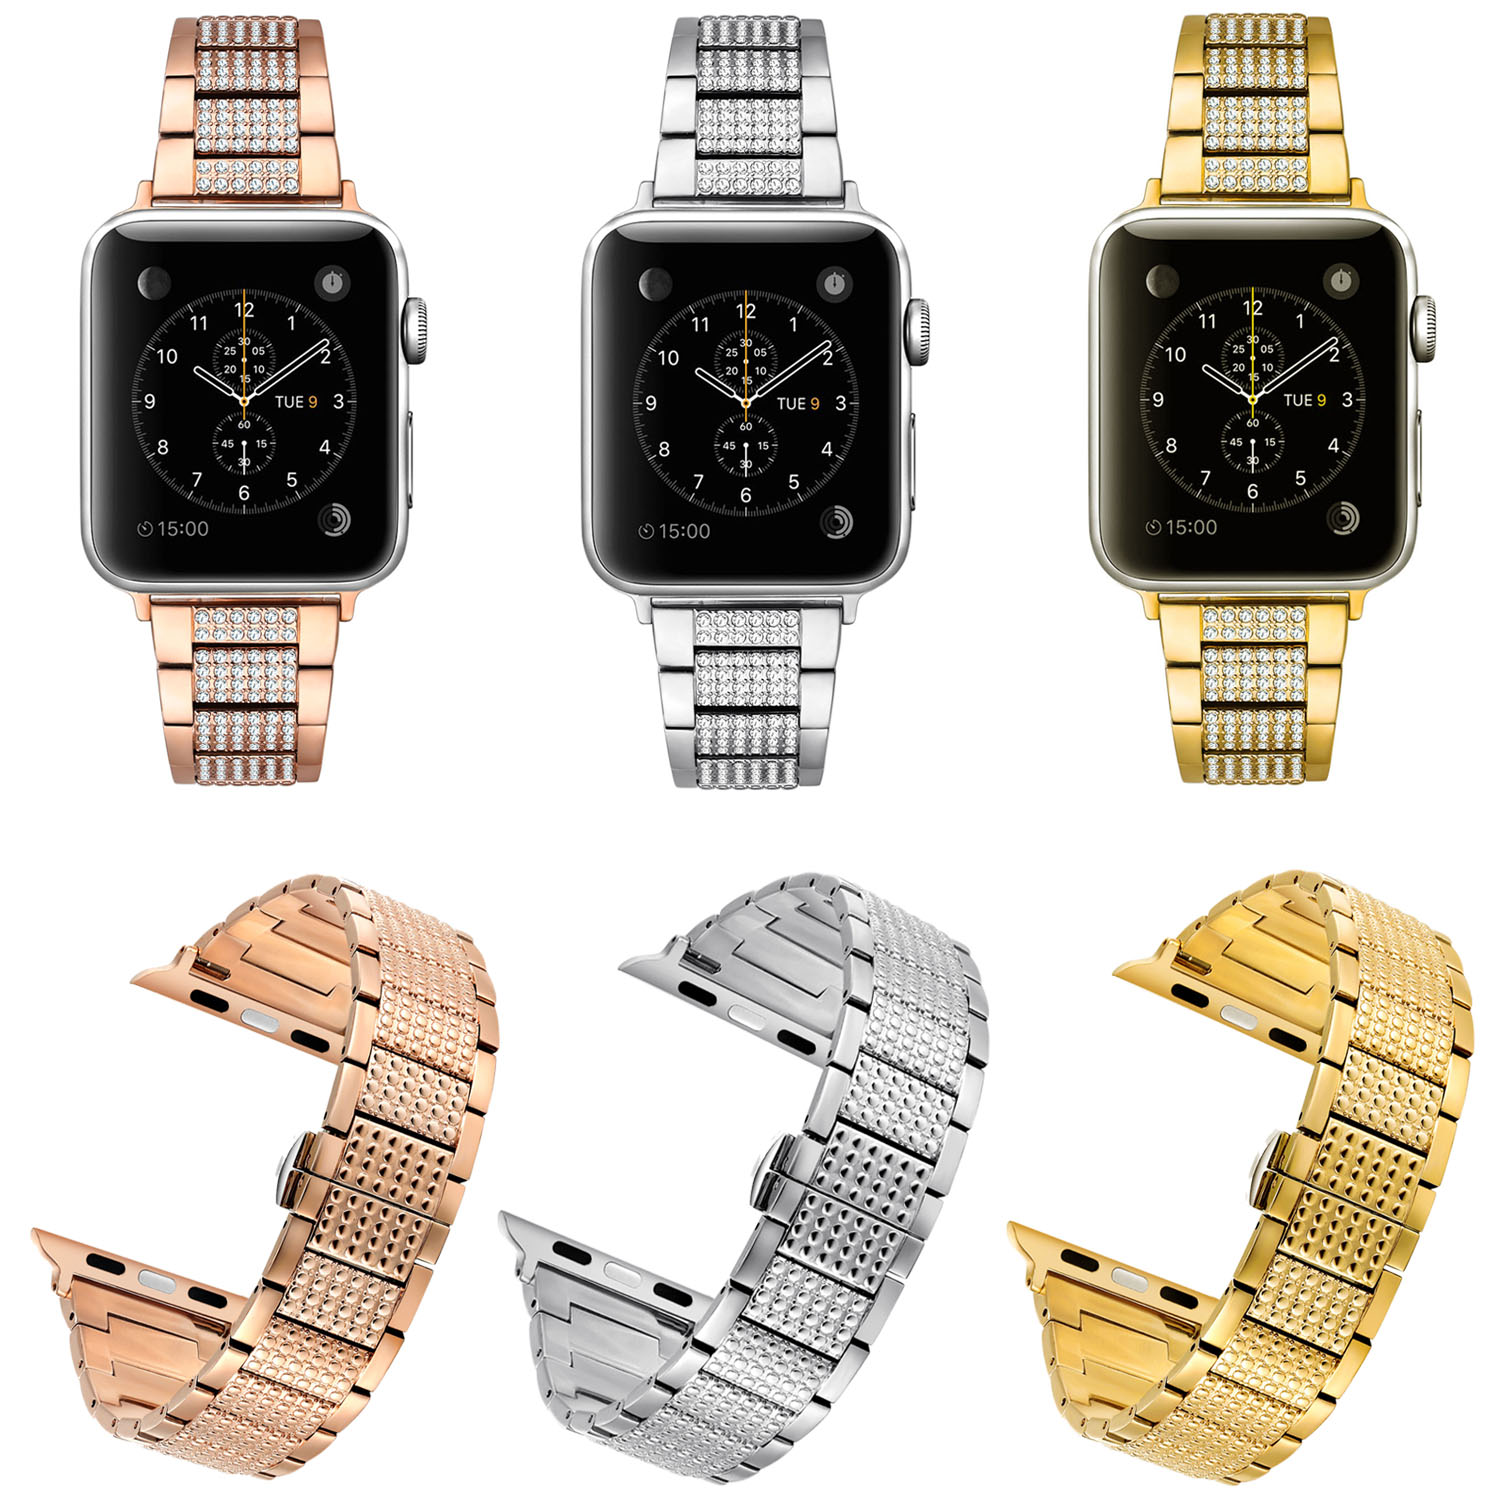 Butterfly Buckle Stainless Steel Watch Band for Apple Watch Series 1/2/3 Strap Bling Diamond Rhinestone Wristband Bracelet<br>